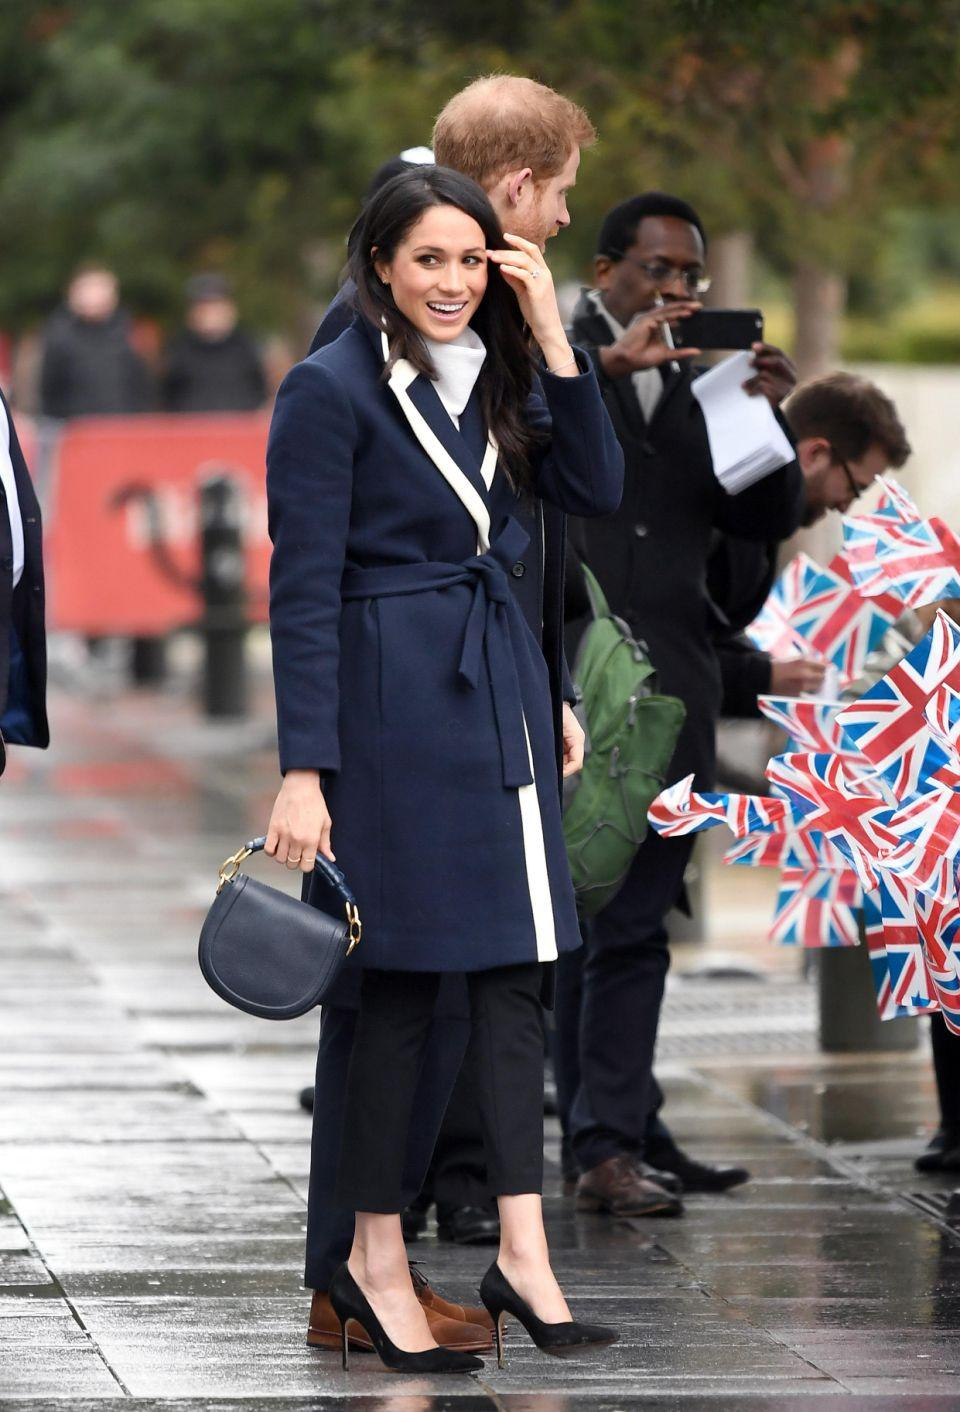 Meghan Markle's gorgeous navy and white coat from J. Crew has already sold out. Photo: Getty Images